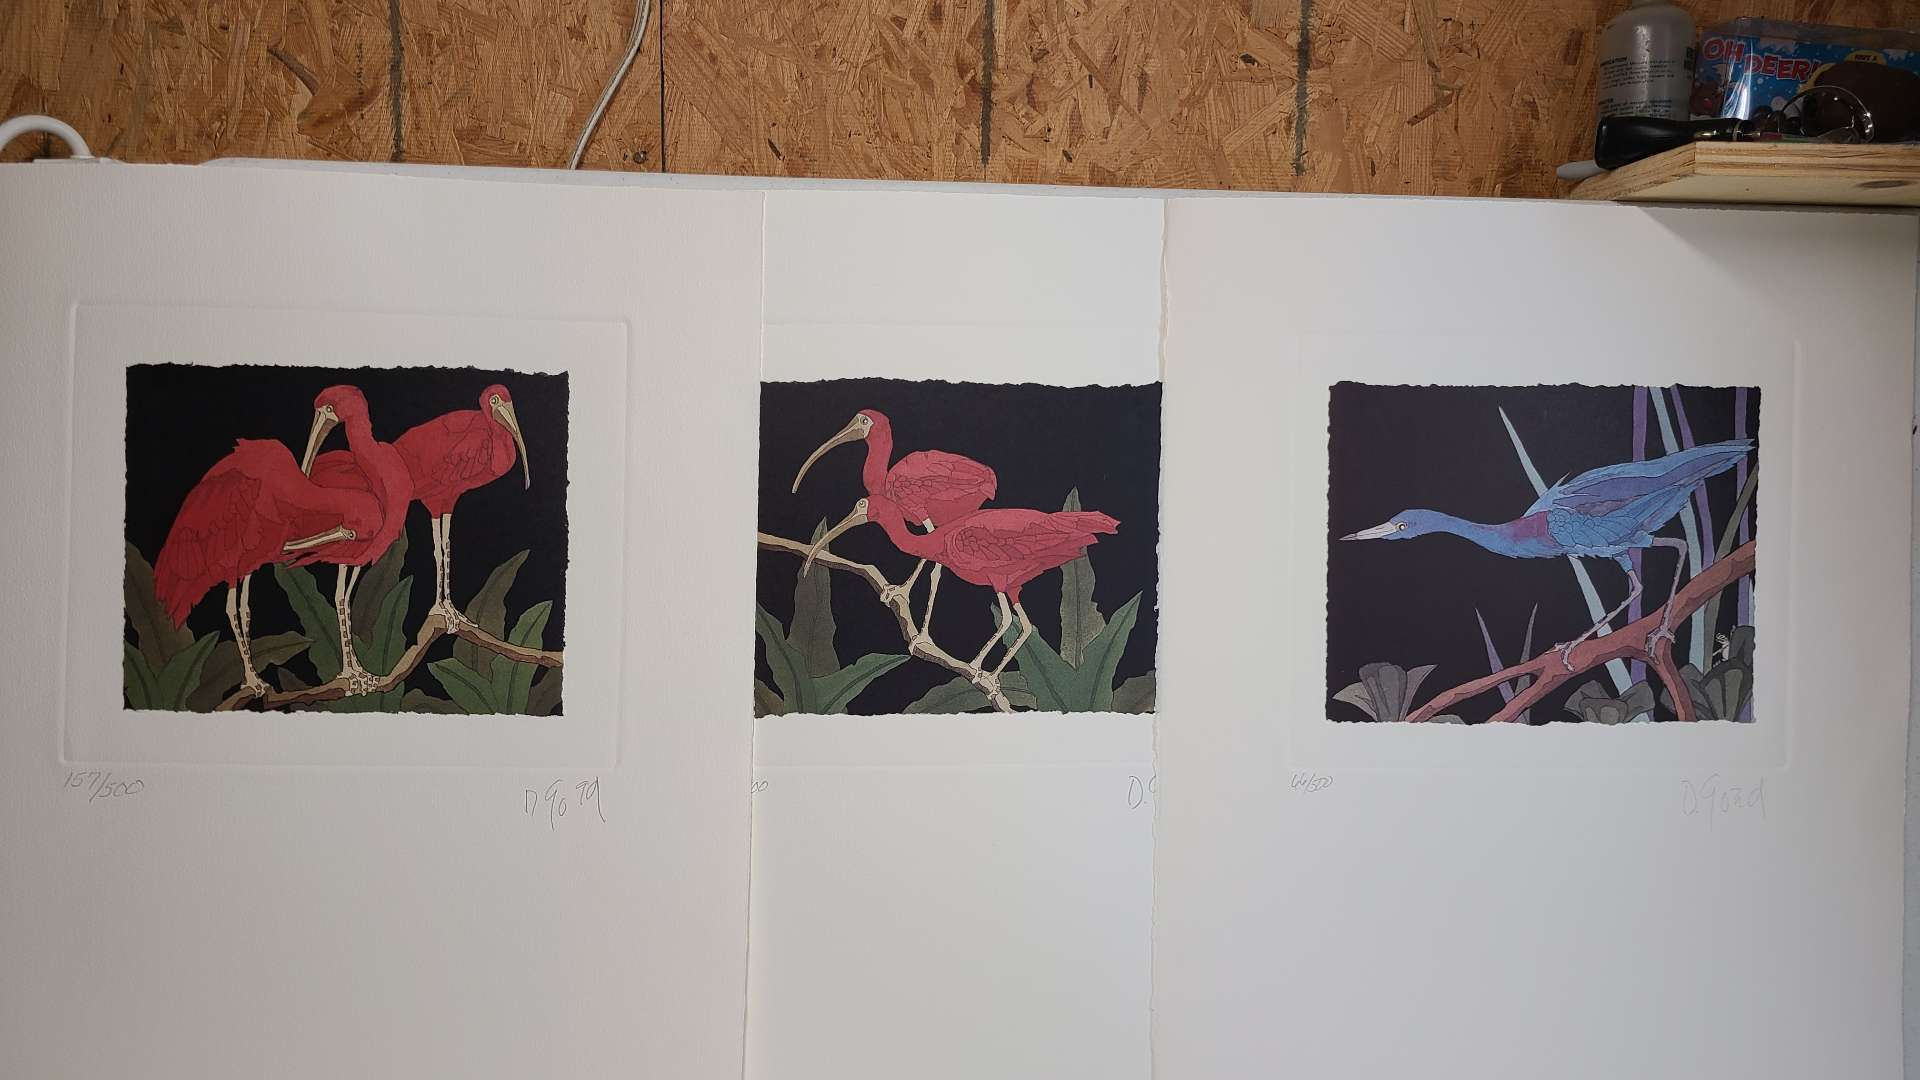 Lot # 238 Lot of 3 Signed & Numbered Lithographs